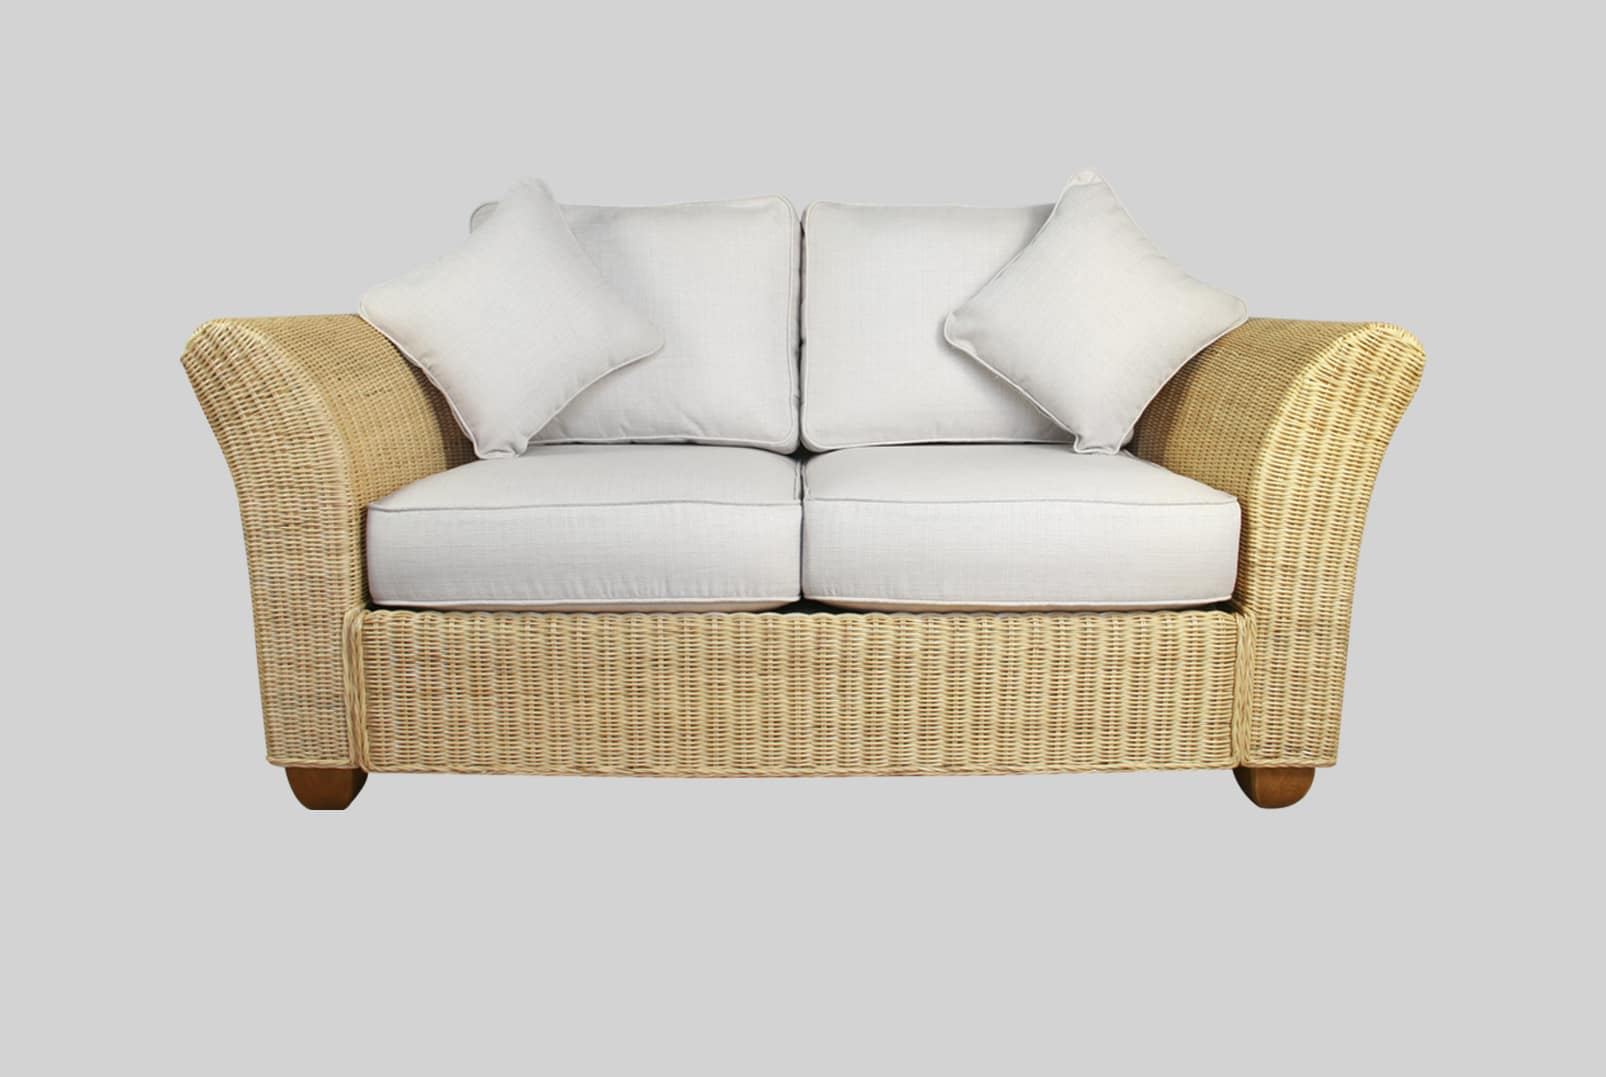 Sofa Wholesalers Uk Rattan Conservatory Furniture Sets Wicker Furniture